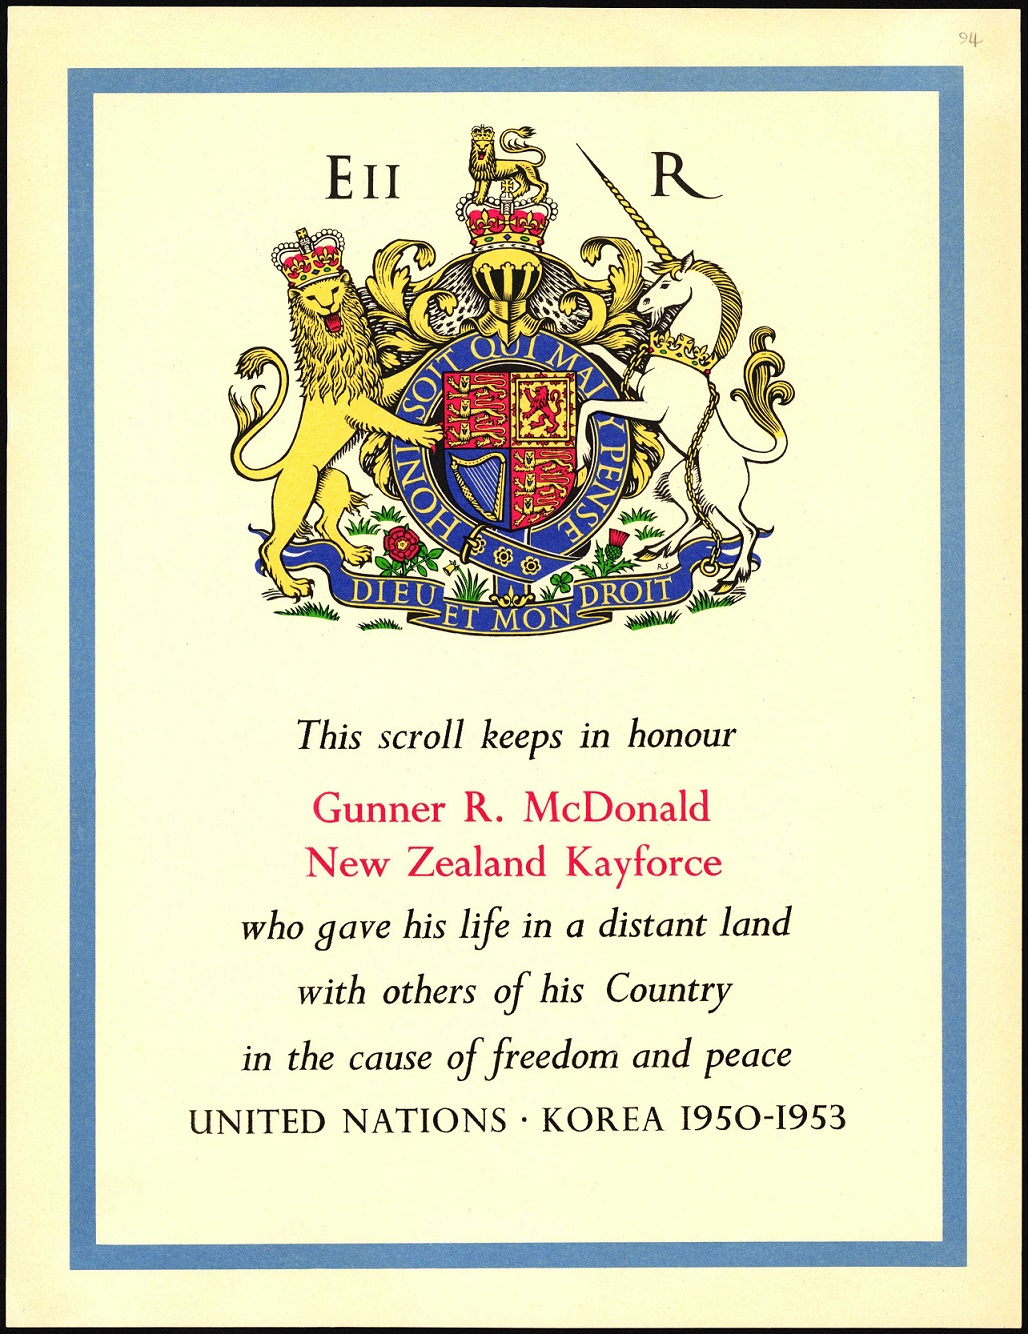 Image of a commemorative scroll with the Royal Coat of arms, some text and a blue border